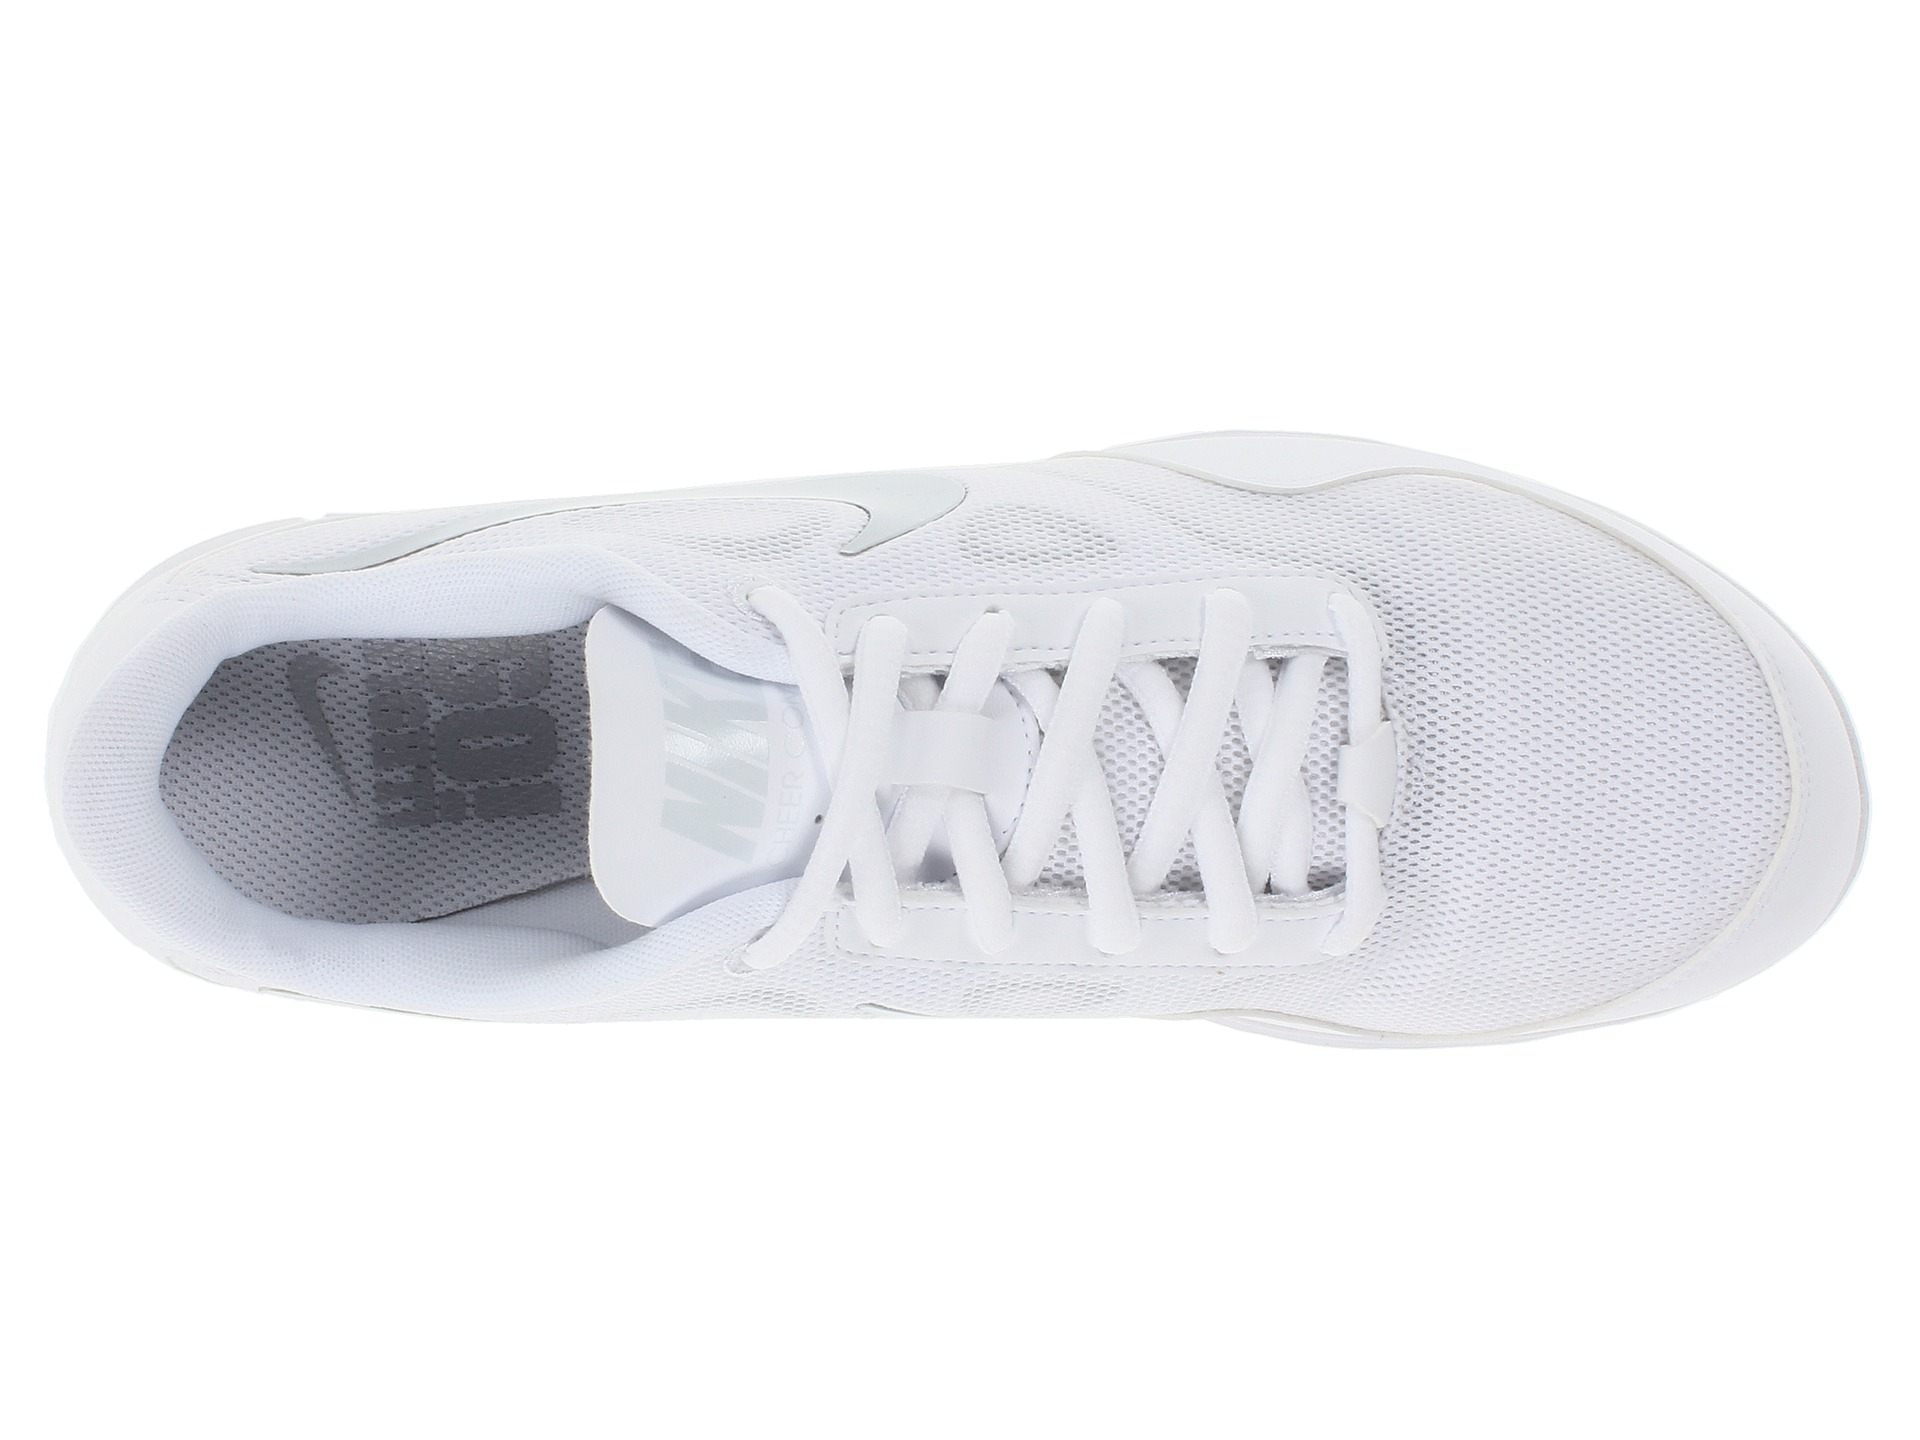 Lyst - Nike Cheer Compete in White 10c2021d8